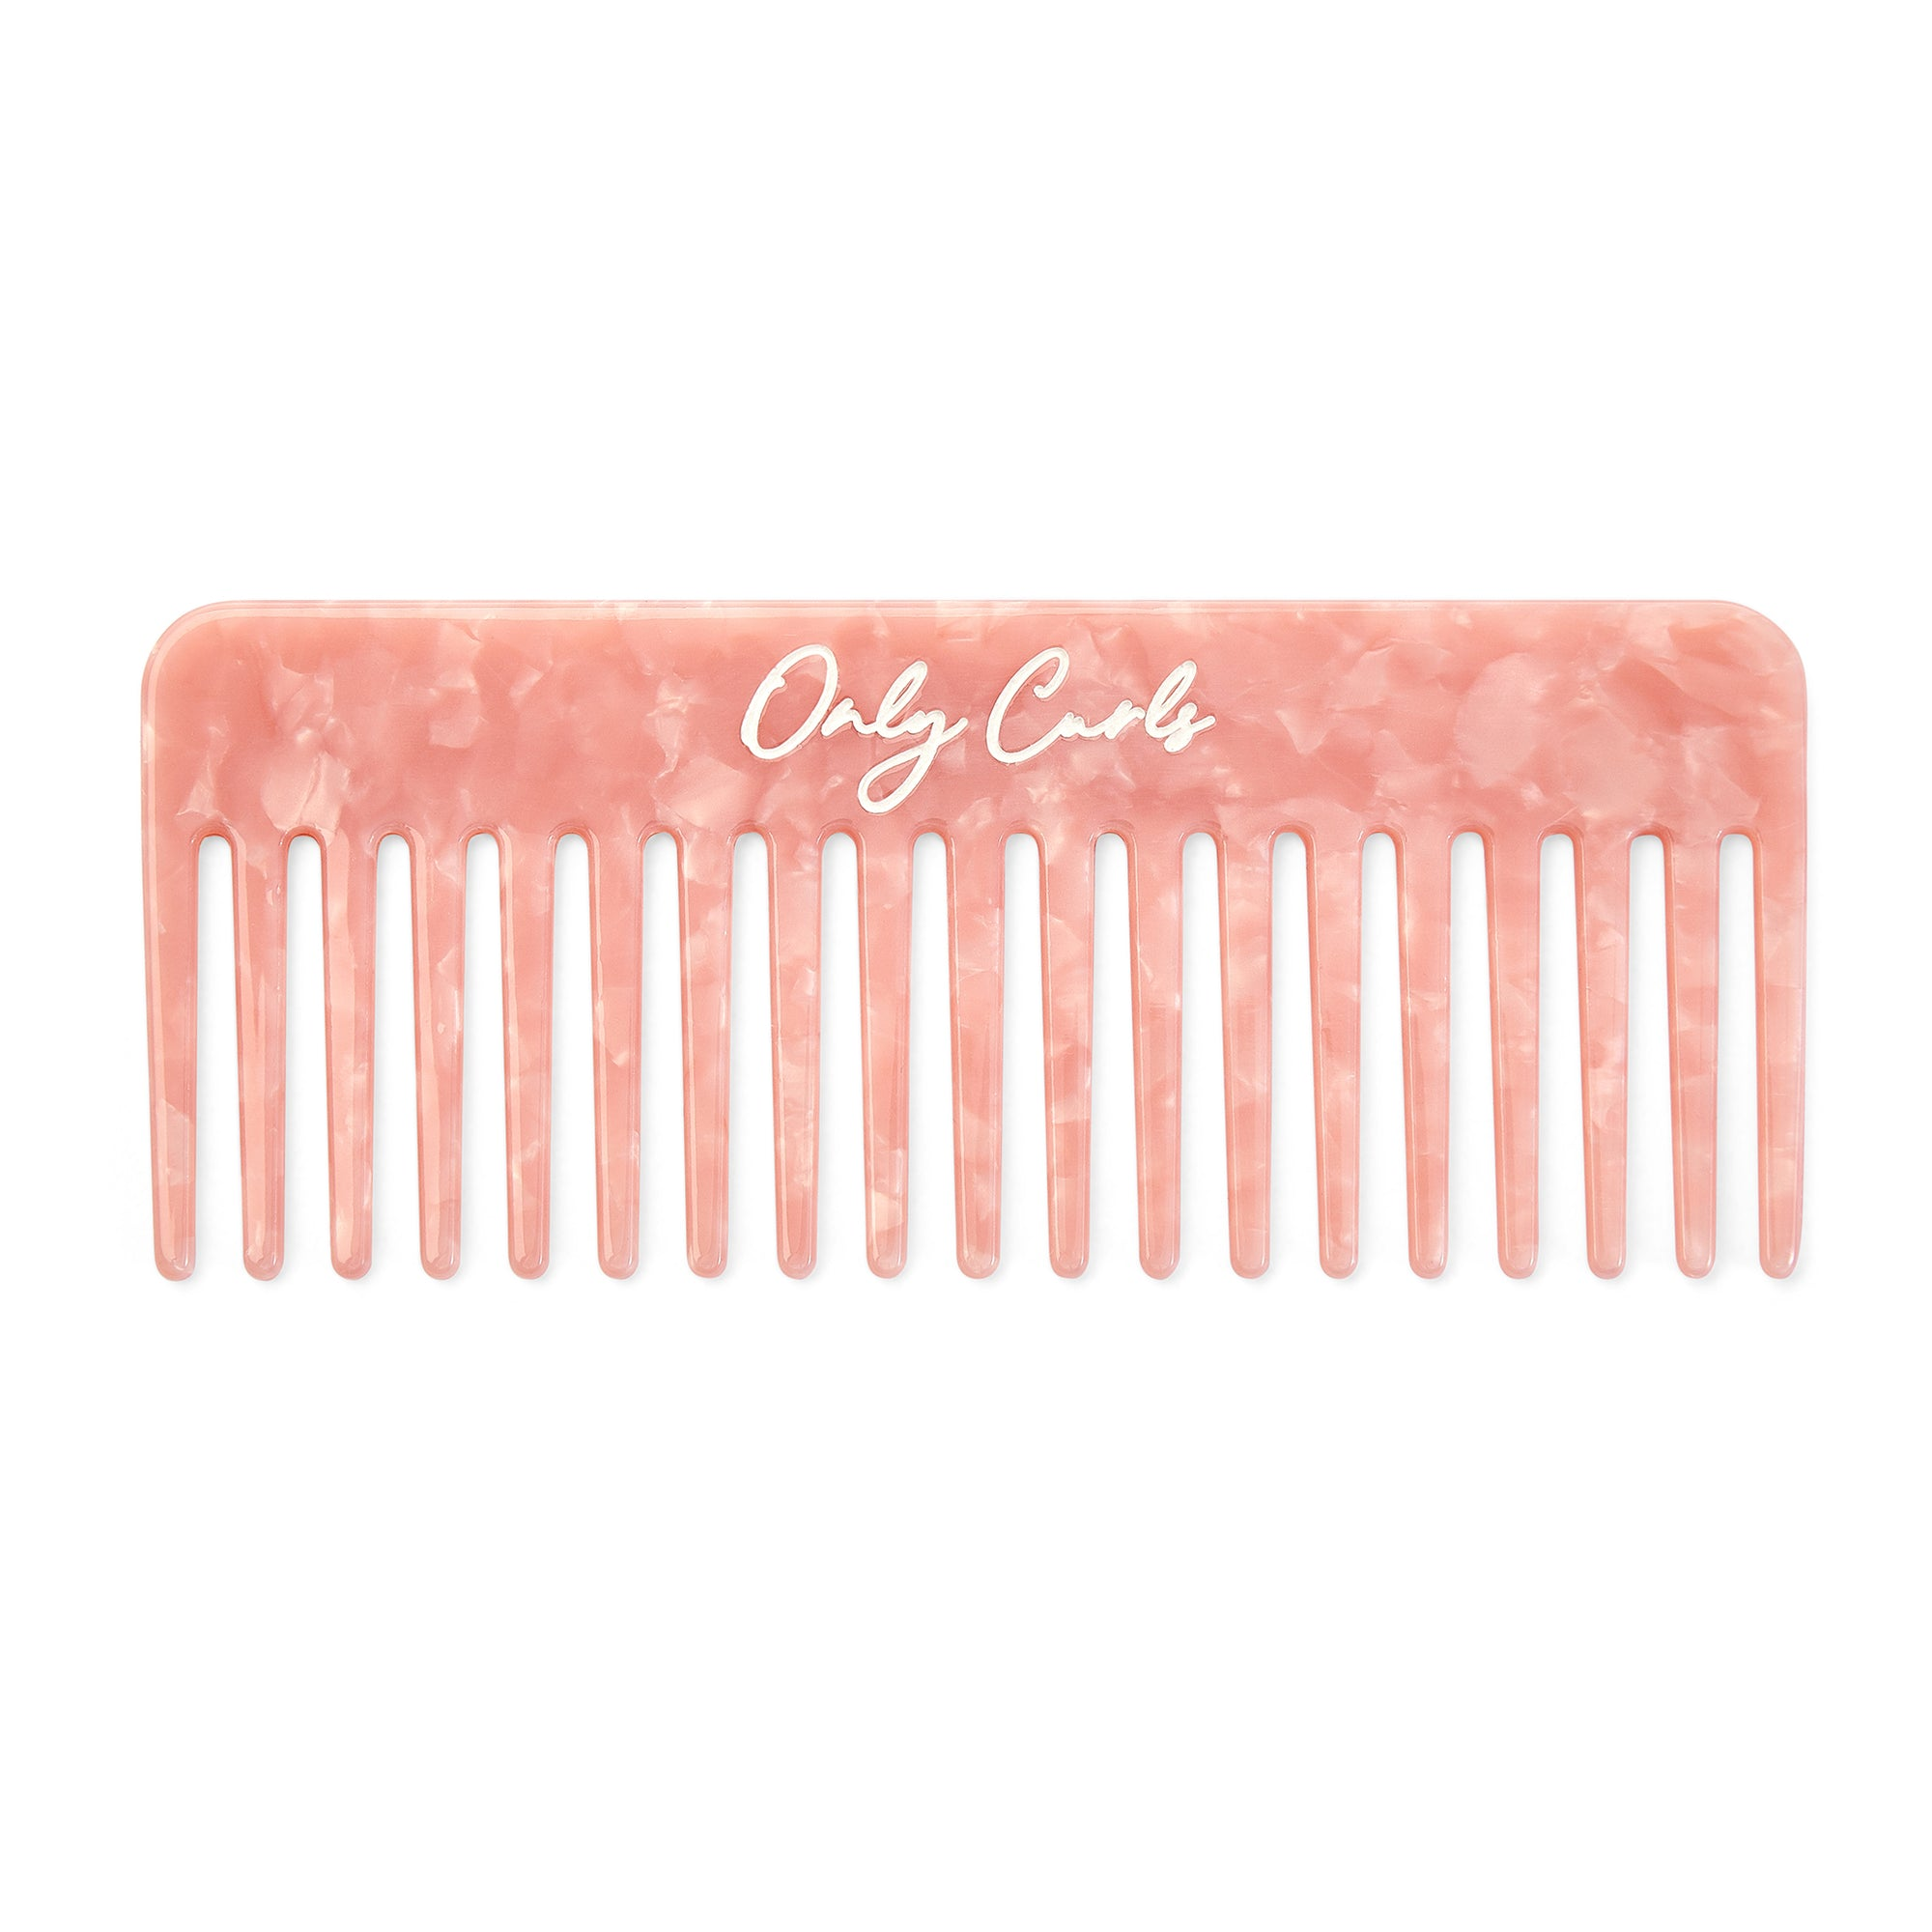 Only Curls Pink Shimmer Comb - Only Curls